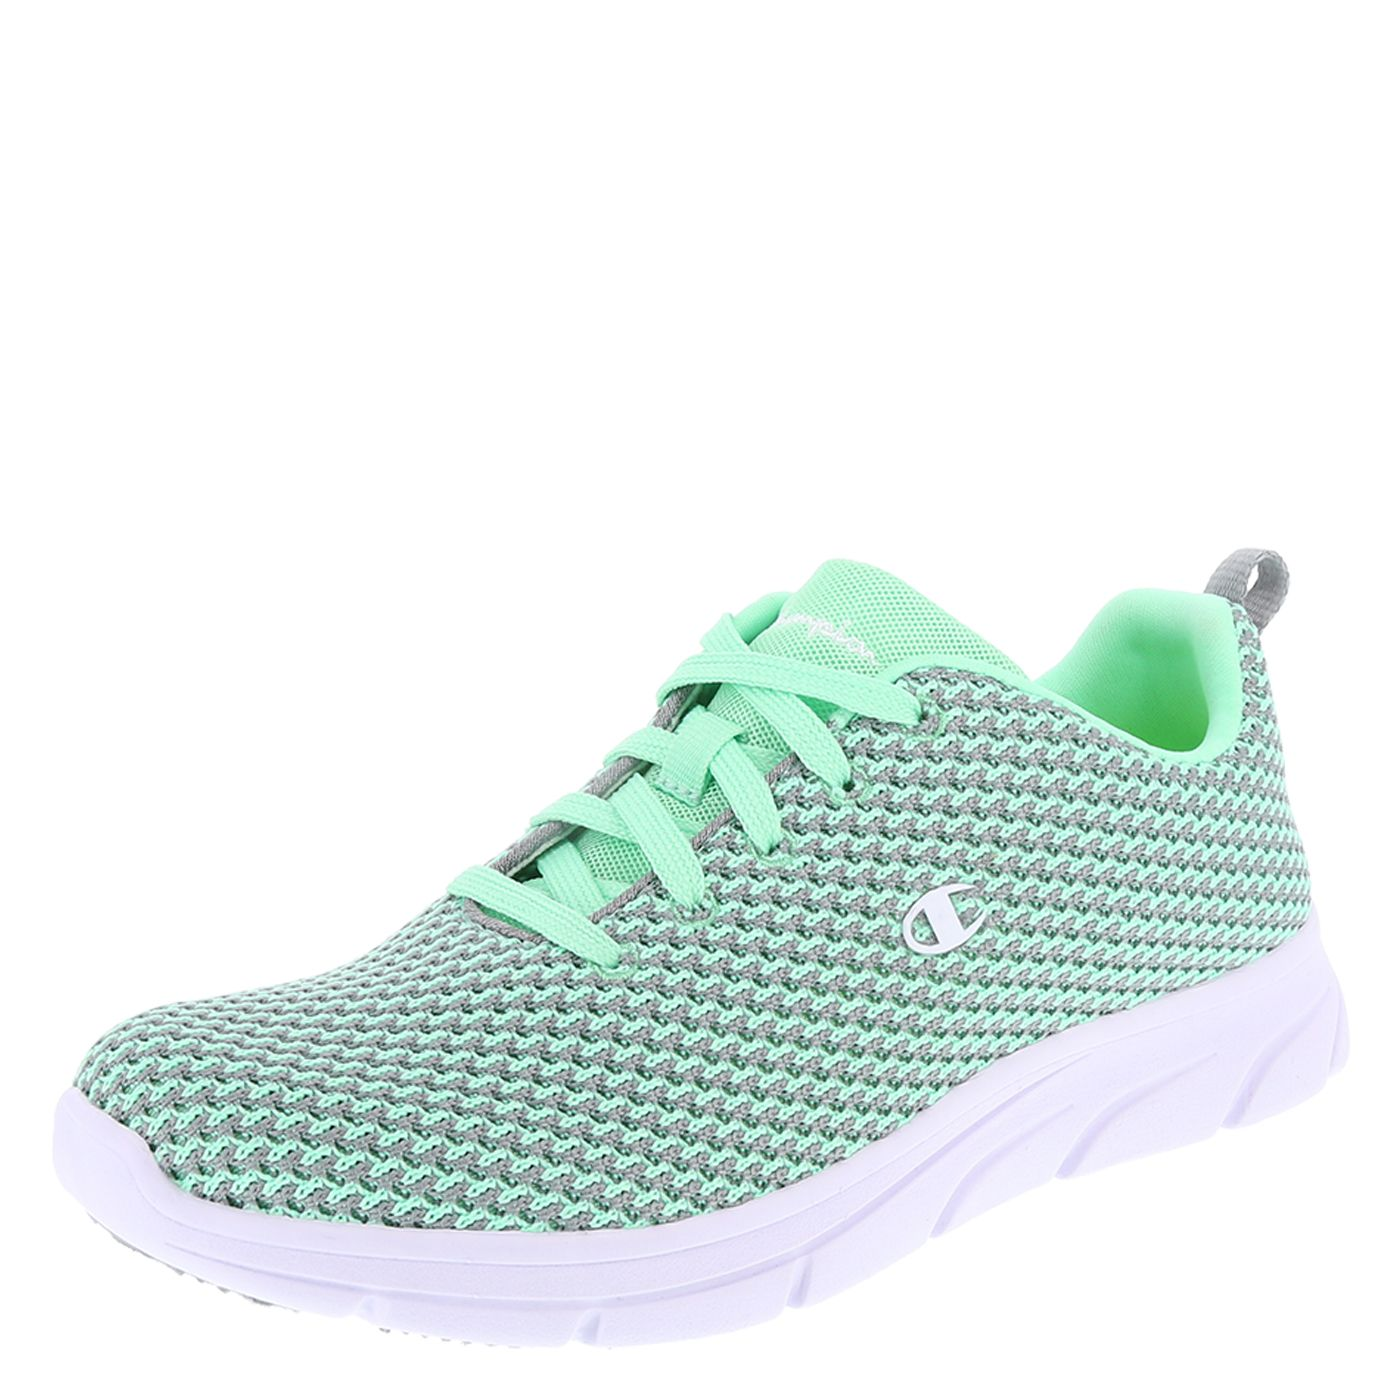 874103857 Summer 2018 Champion Apollo Women s Runner Shoe